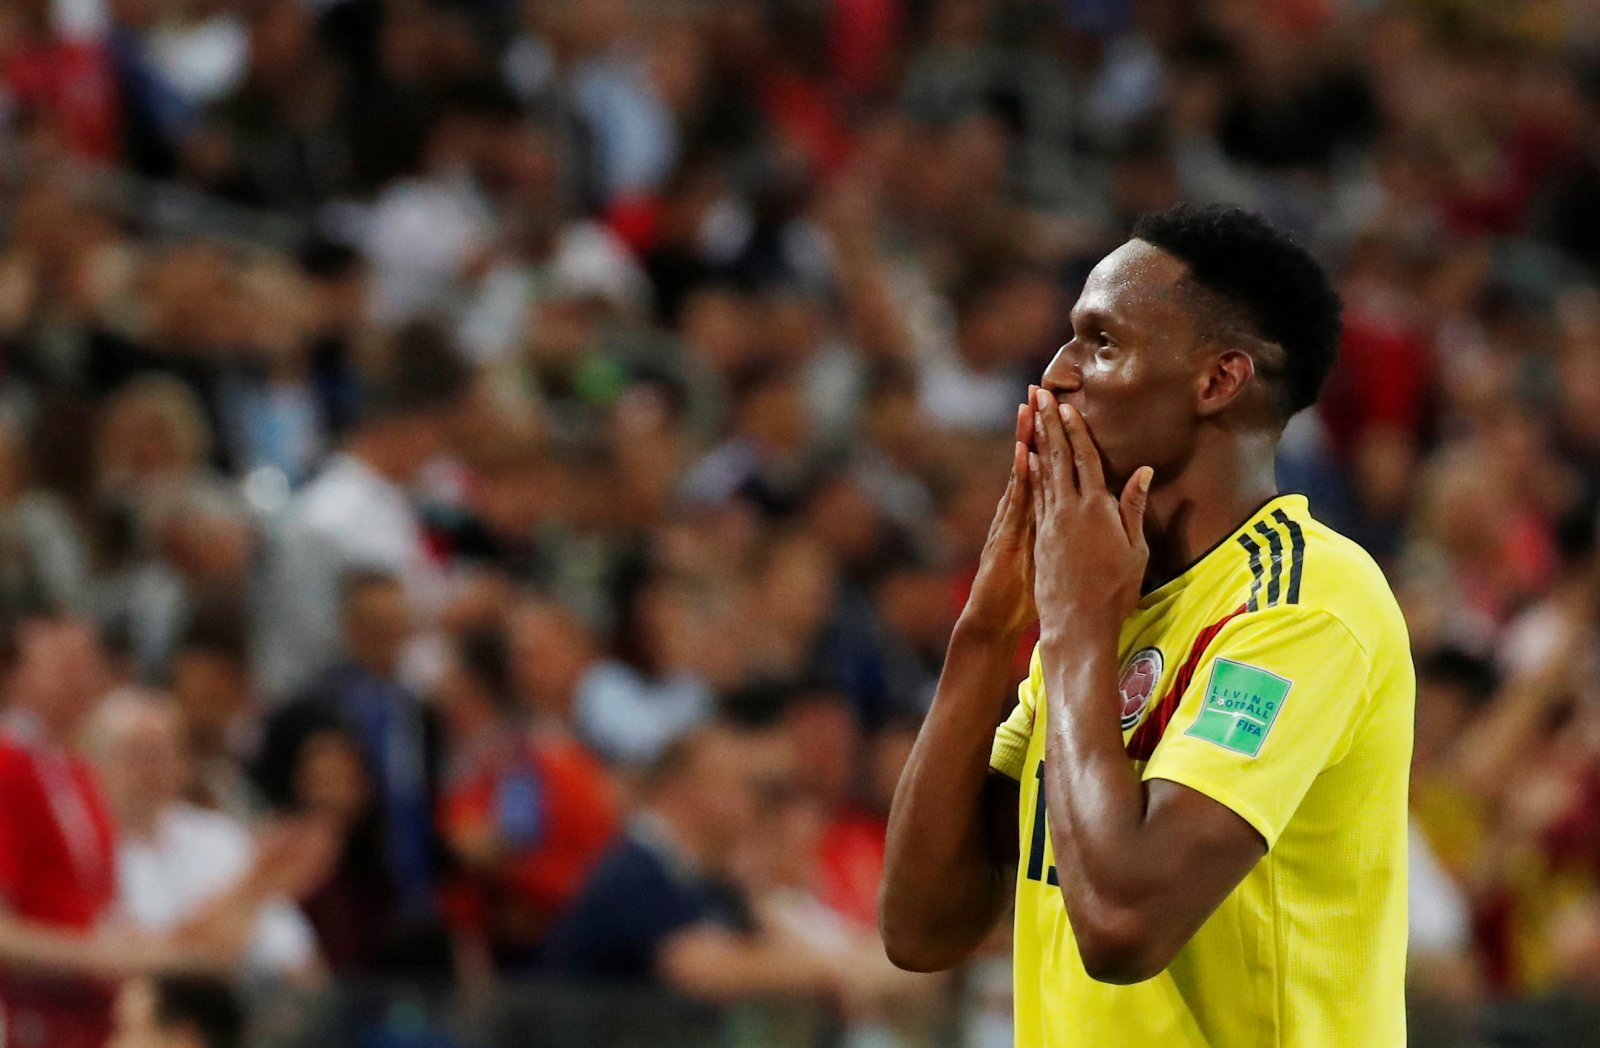 With the Lascelles deal looking dead, West Ham should move for Mina